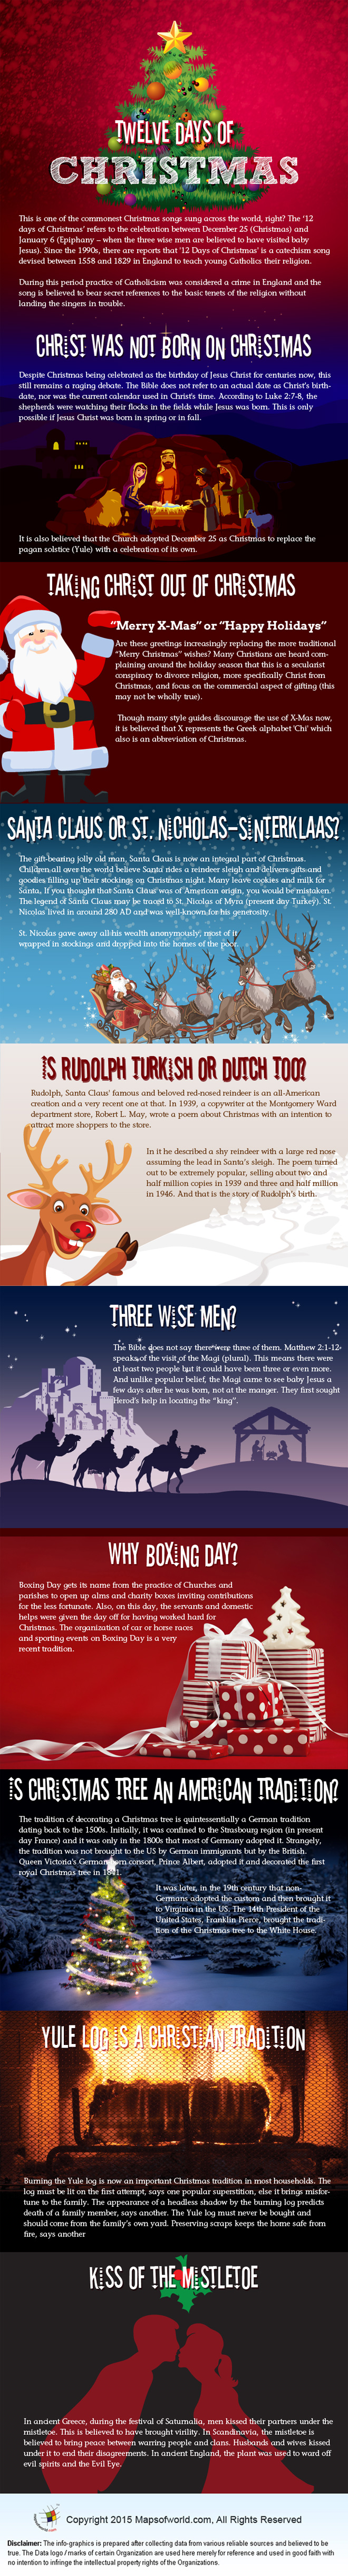 Infographics on Christmas Myths and Legends